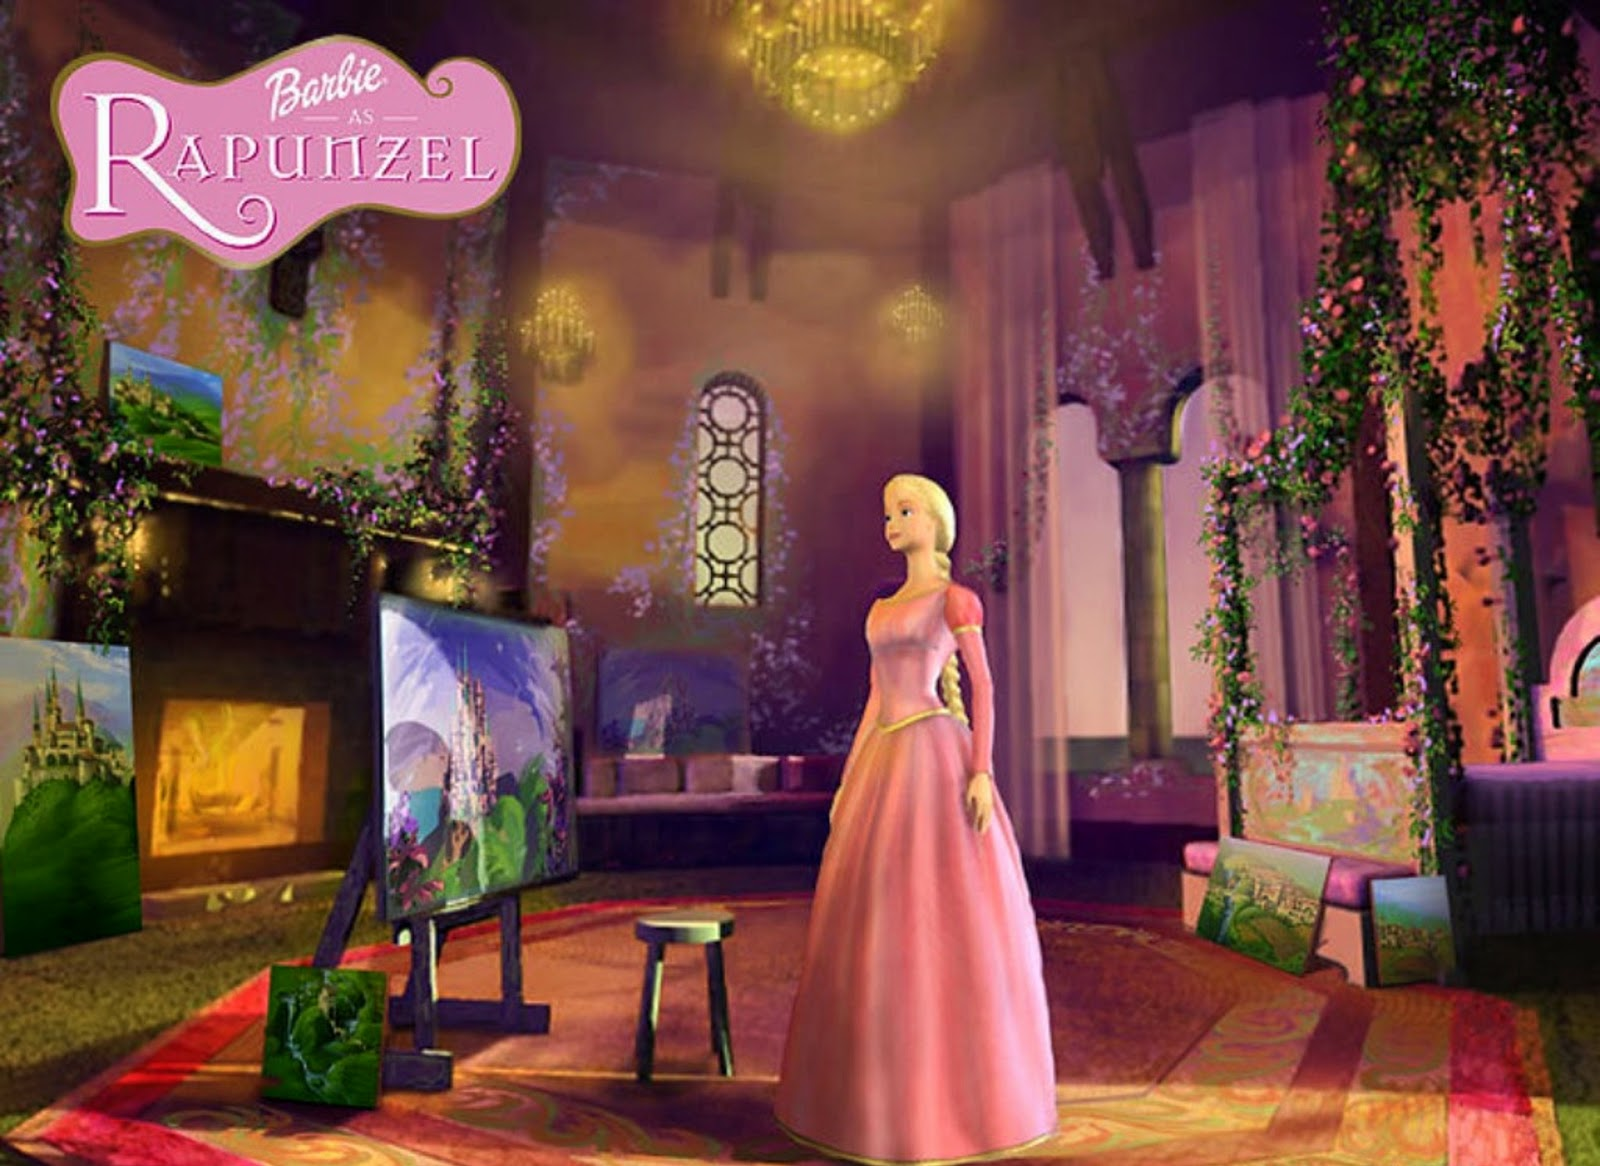 An imprisoned Rapunzel creates paintings with her magic paintbrush in Barbie as Rapunzel (2002)